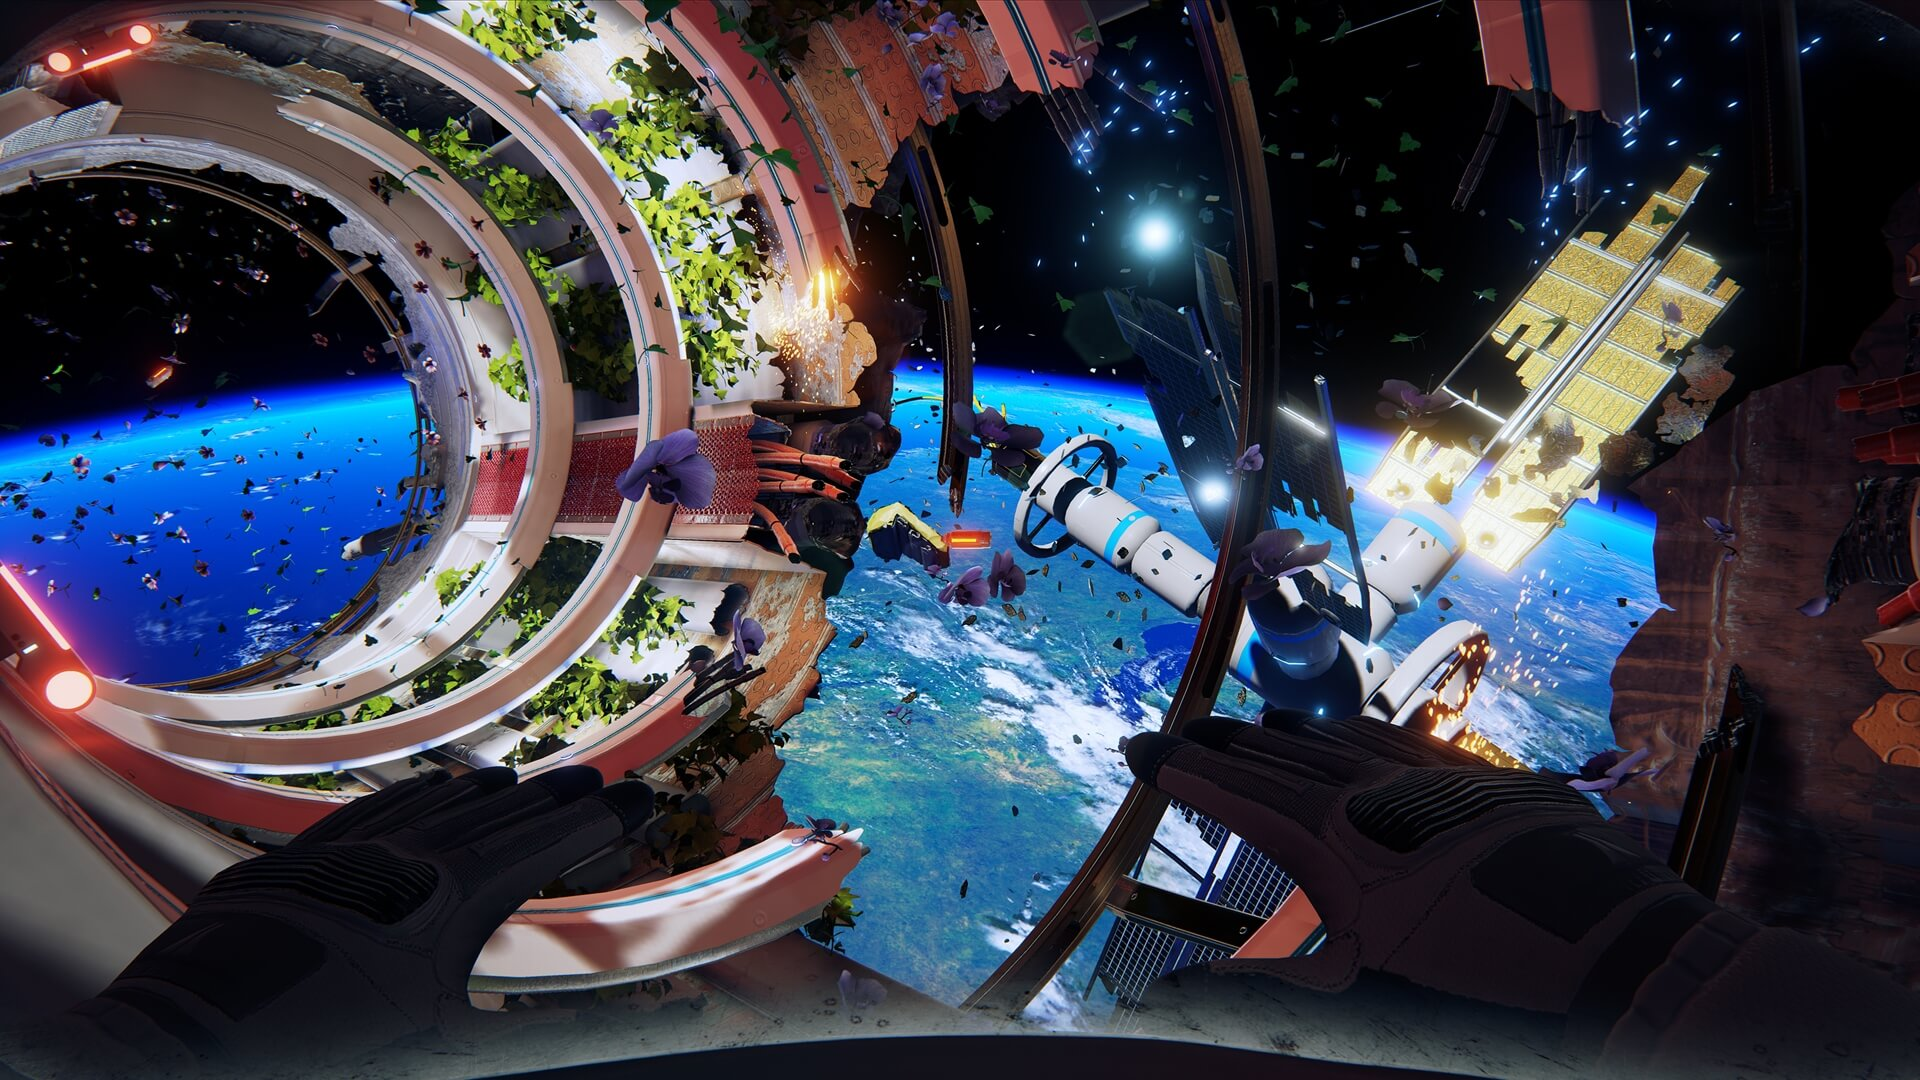 Adr1ft (WW)